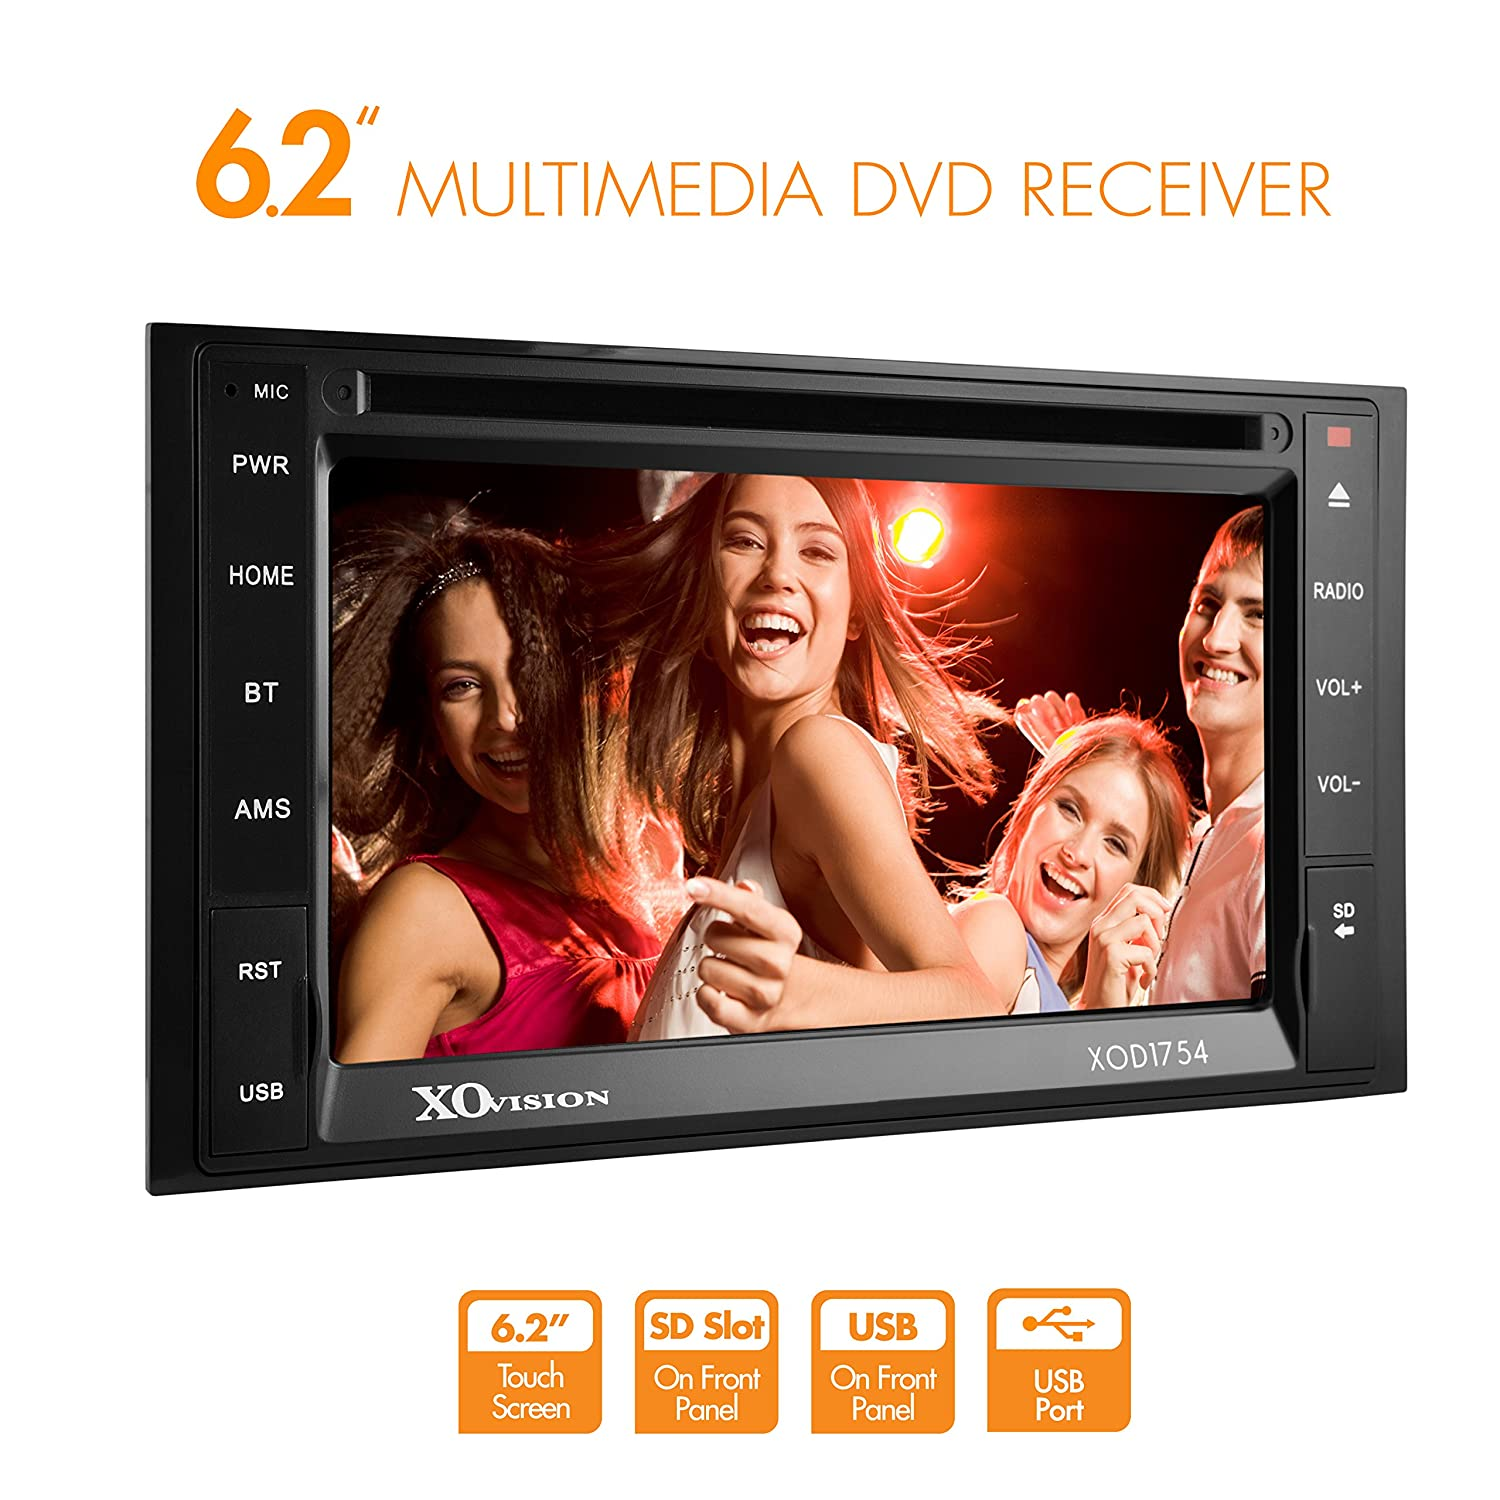 XO Vision XOD1754 6.2-Inch Touch Screen USB On Front Panel and 75WX4 Max Power SD Slot On Front Panel